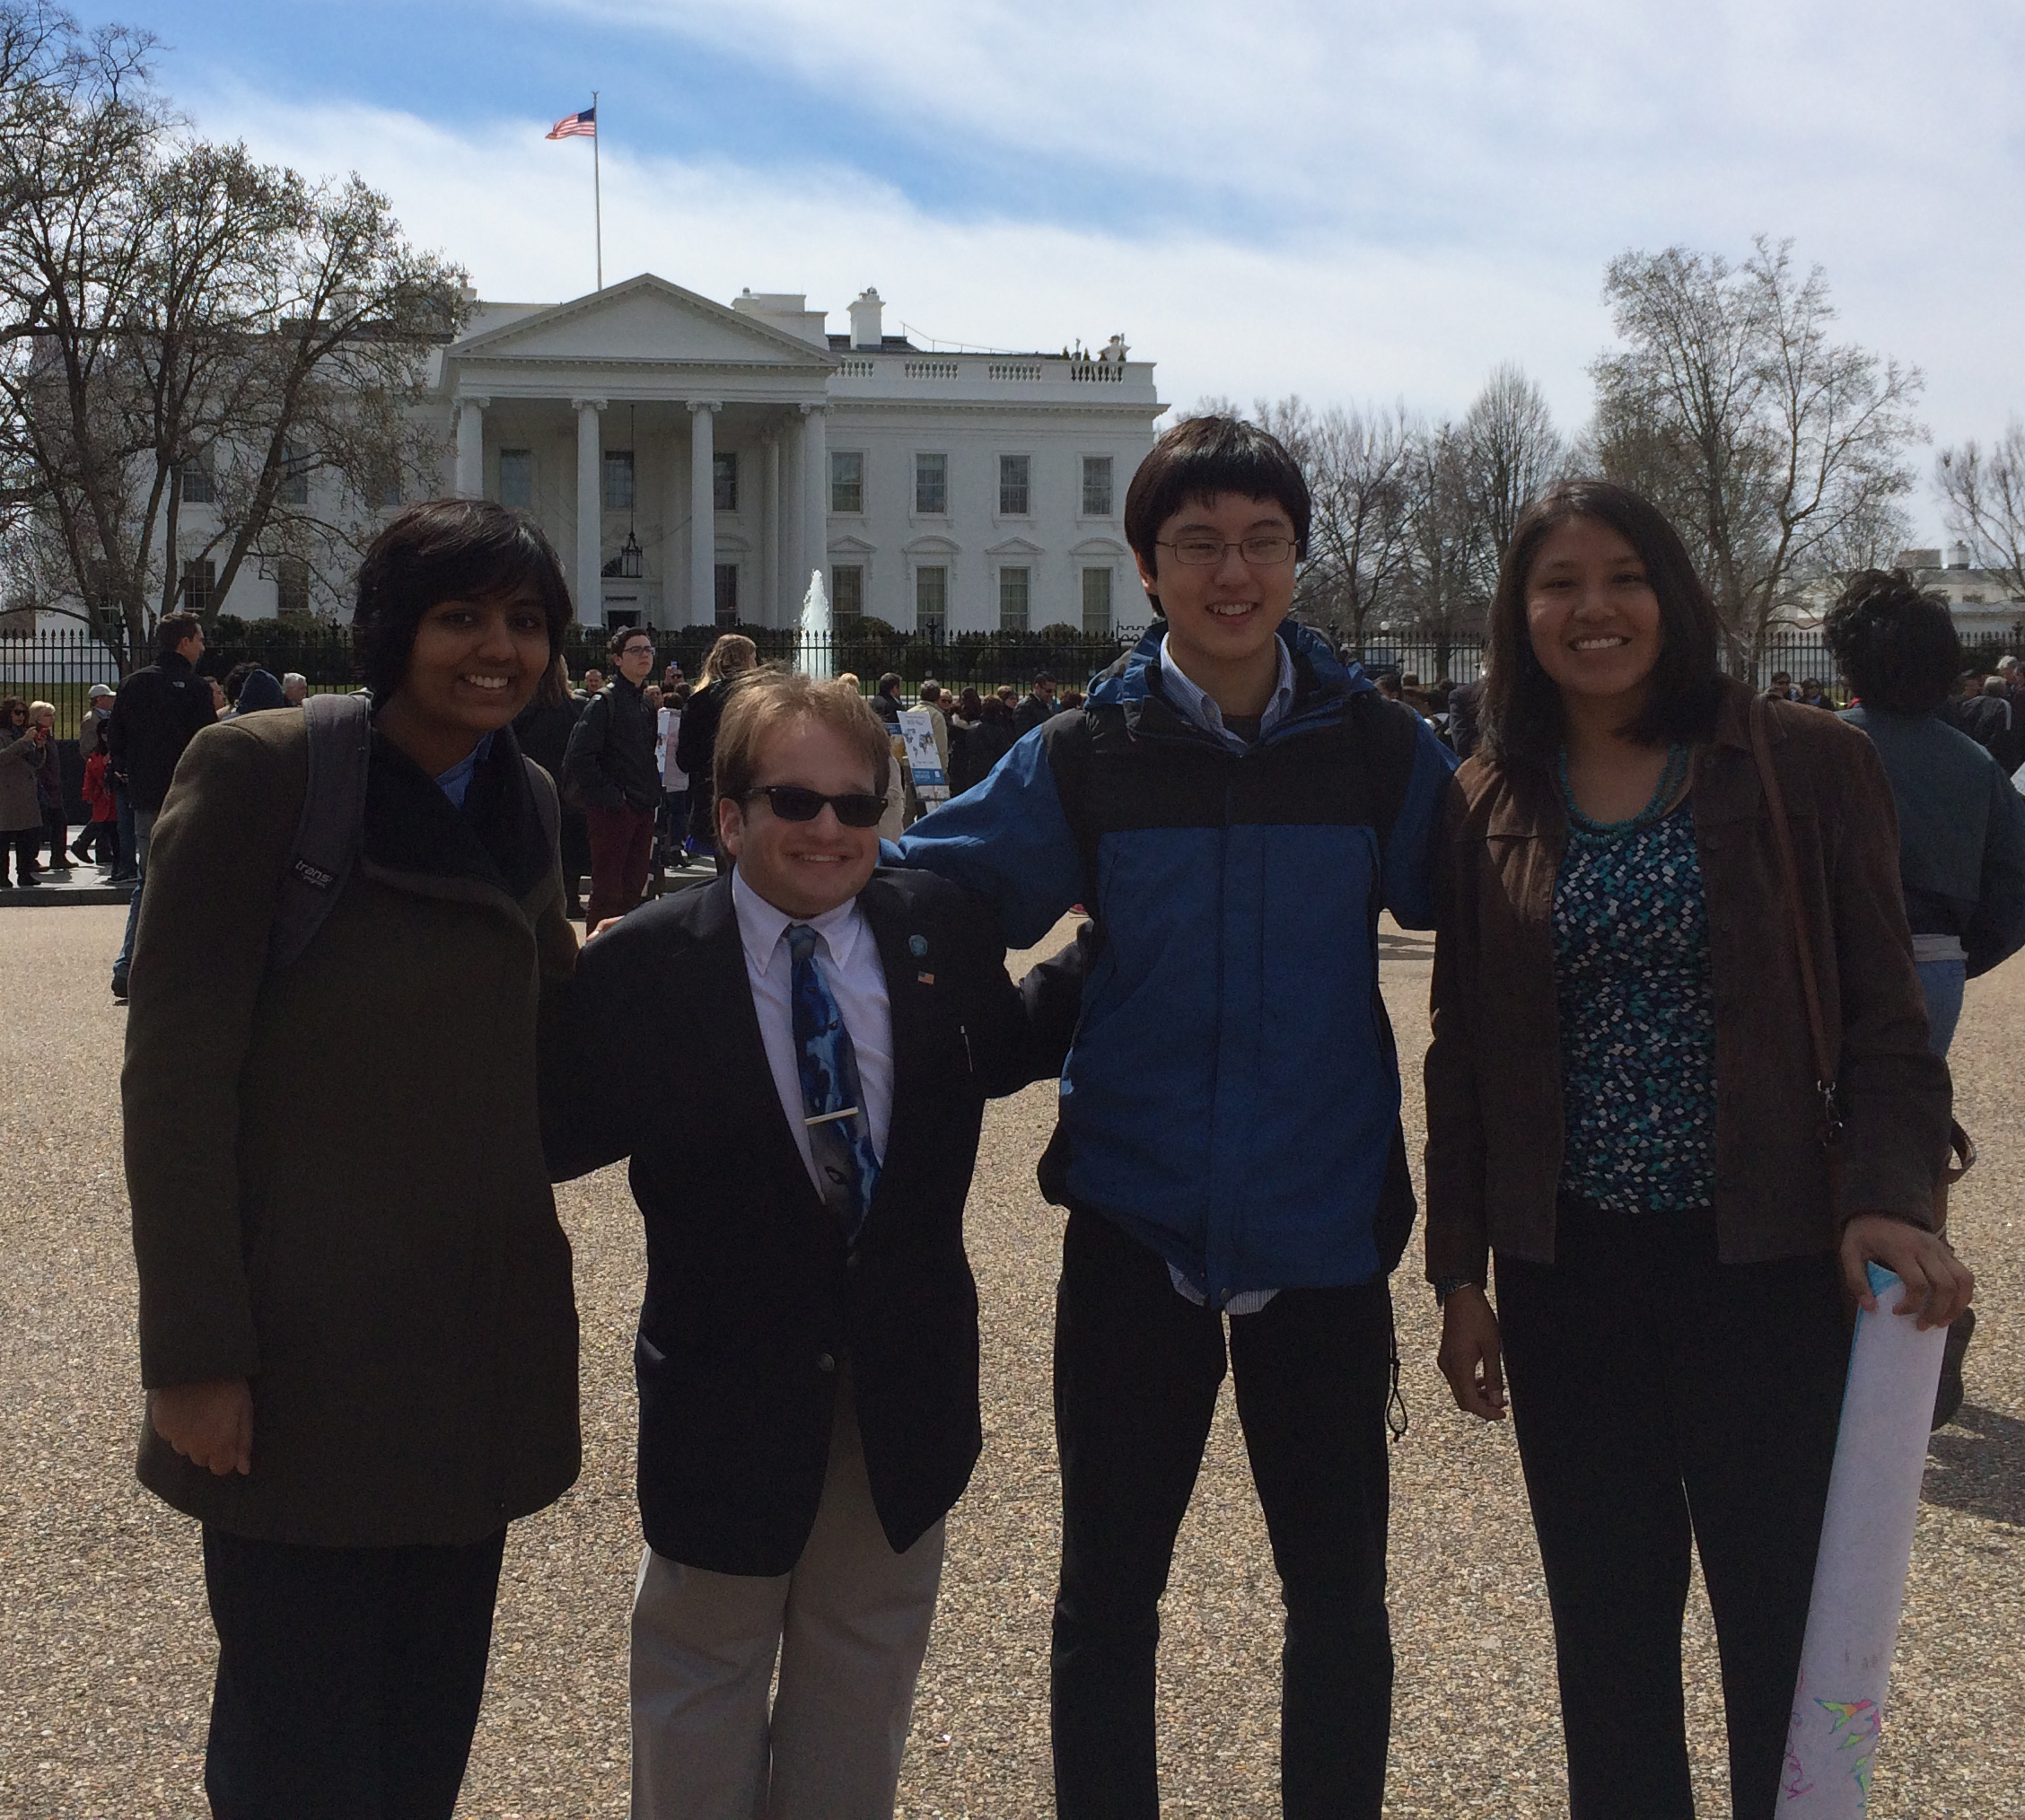 Anvita Gupta, Harry Paul. Nathan Han, and Kelly Charley in front of the White House.